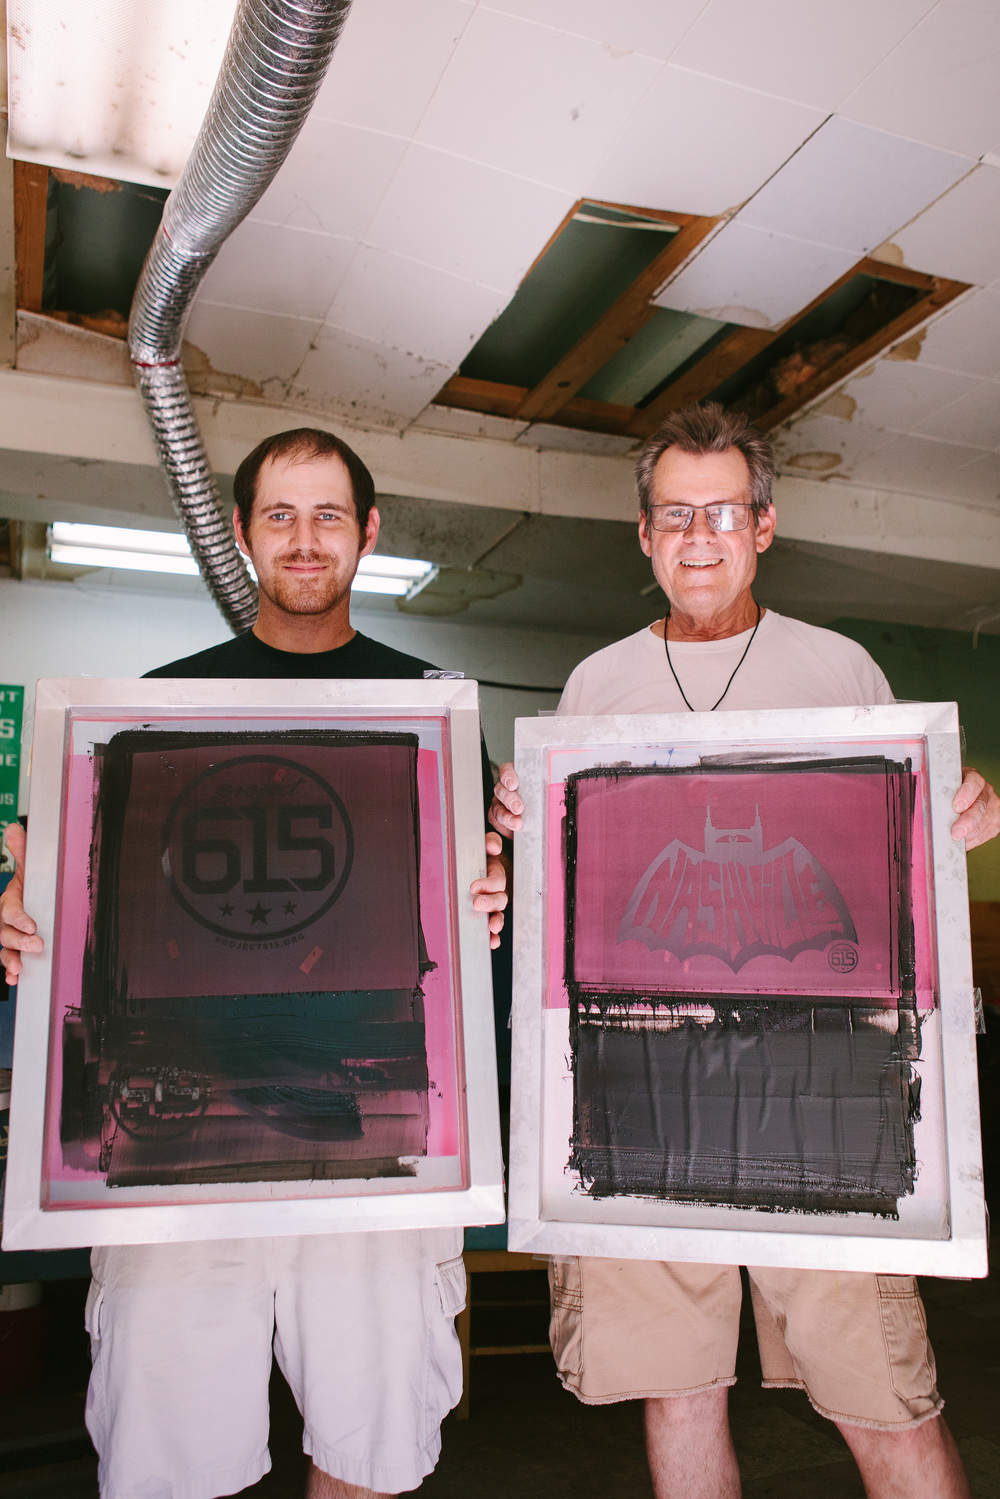 Proudly holding two well known screen designs for Project 615.